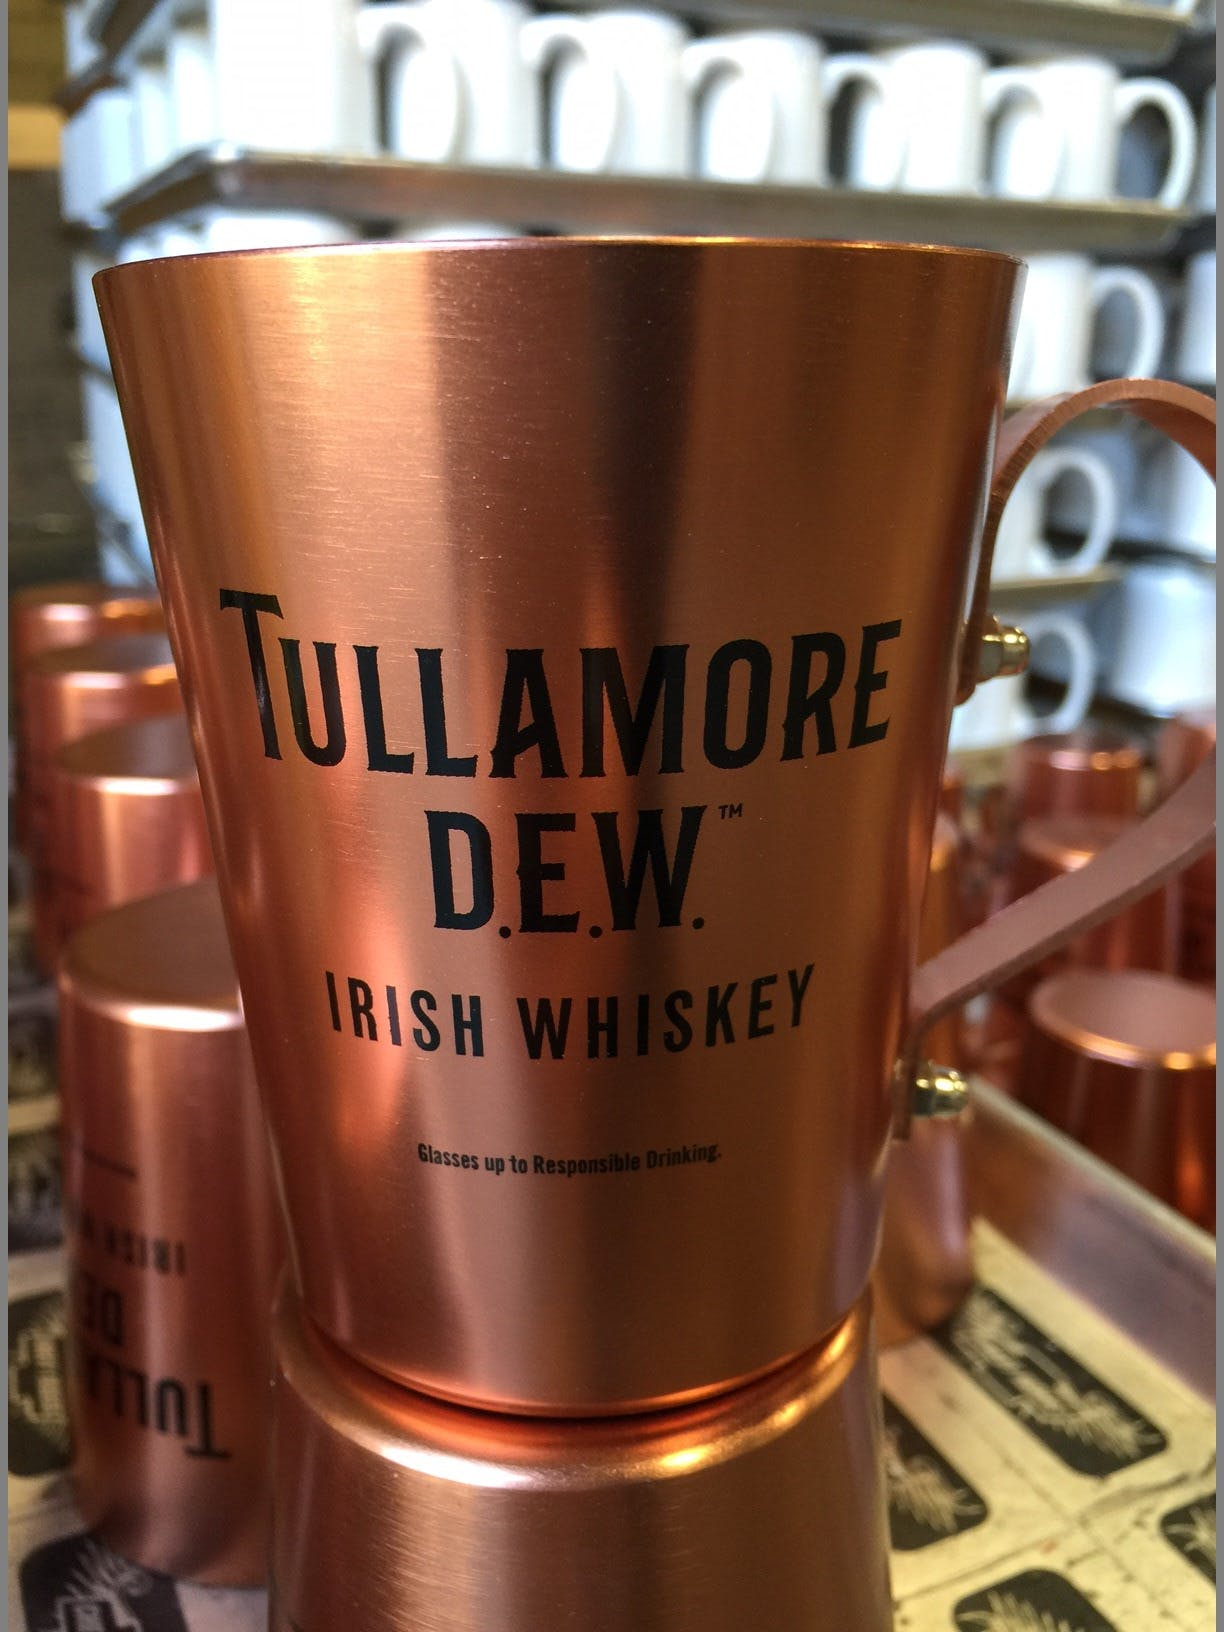 Rivet Screen Printed - Moscow Mule Copper Mugs Decorated - Screen Printed or Laser Engraved - Minimum 60/72 pcs. - sold by Circle Star Pro